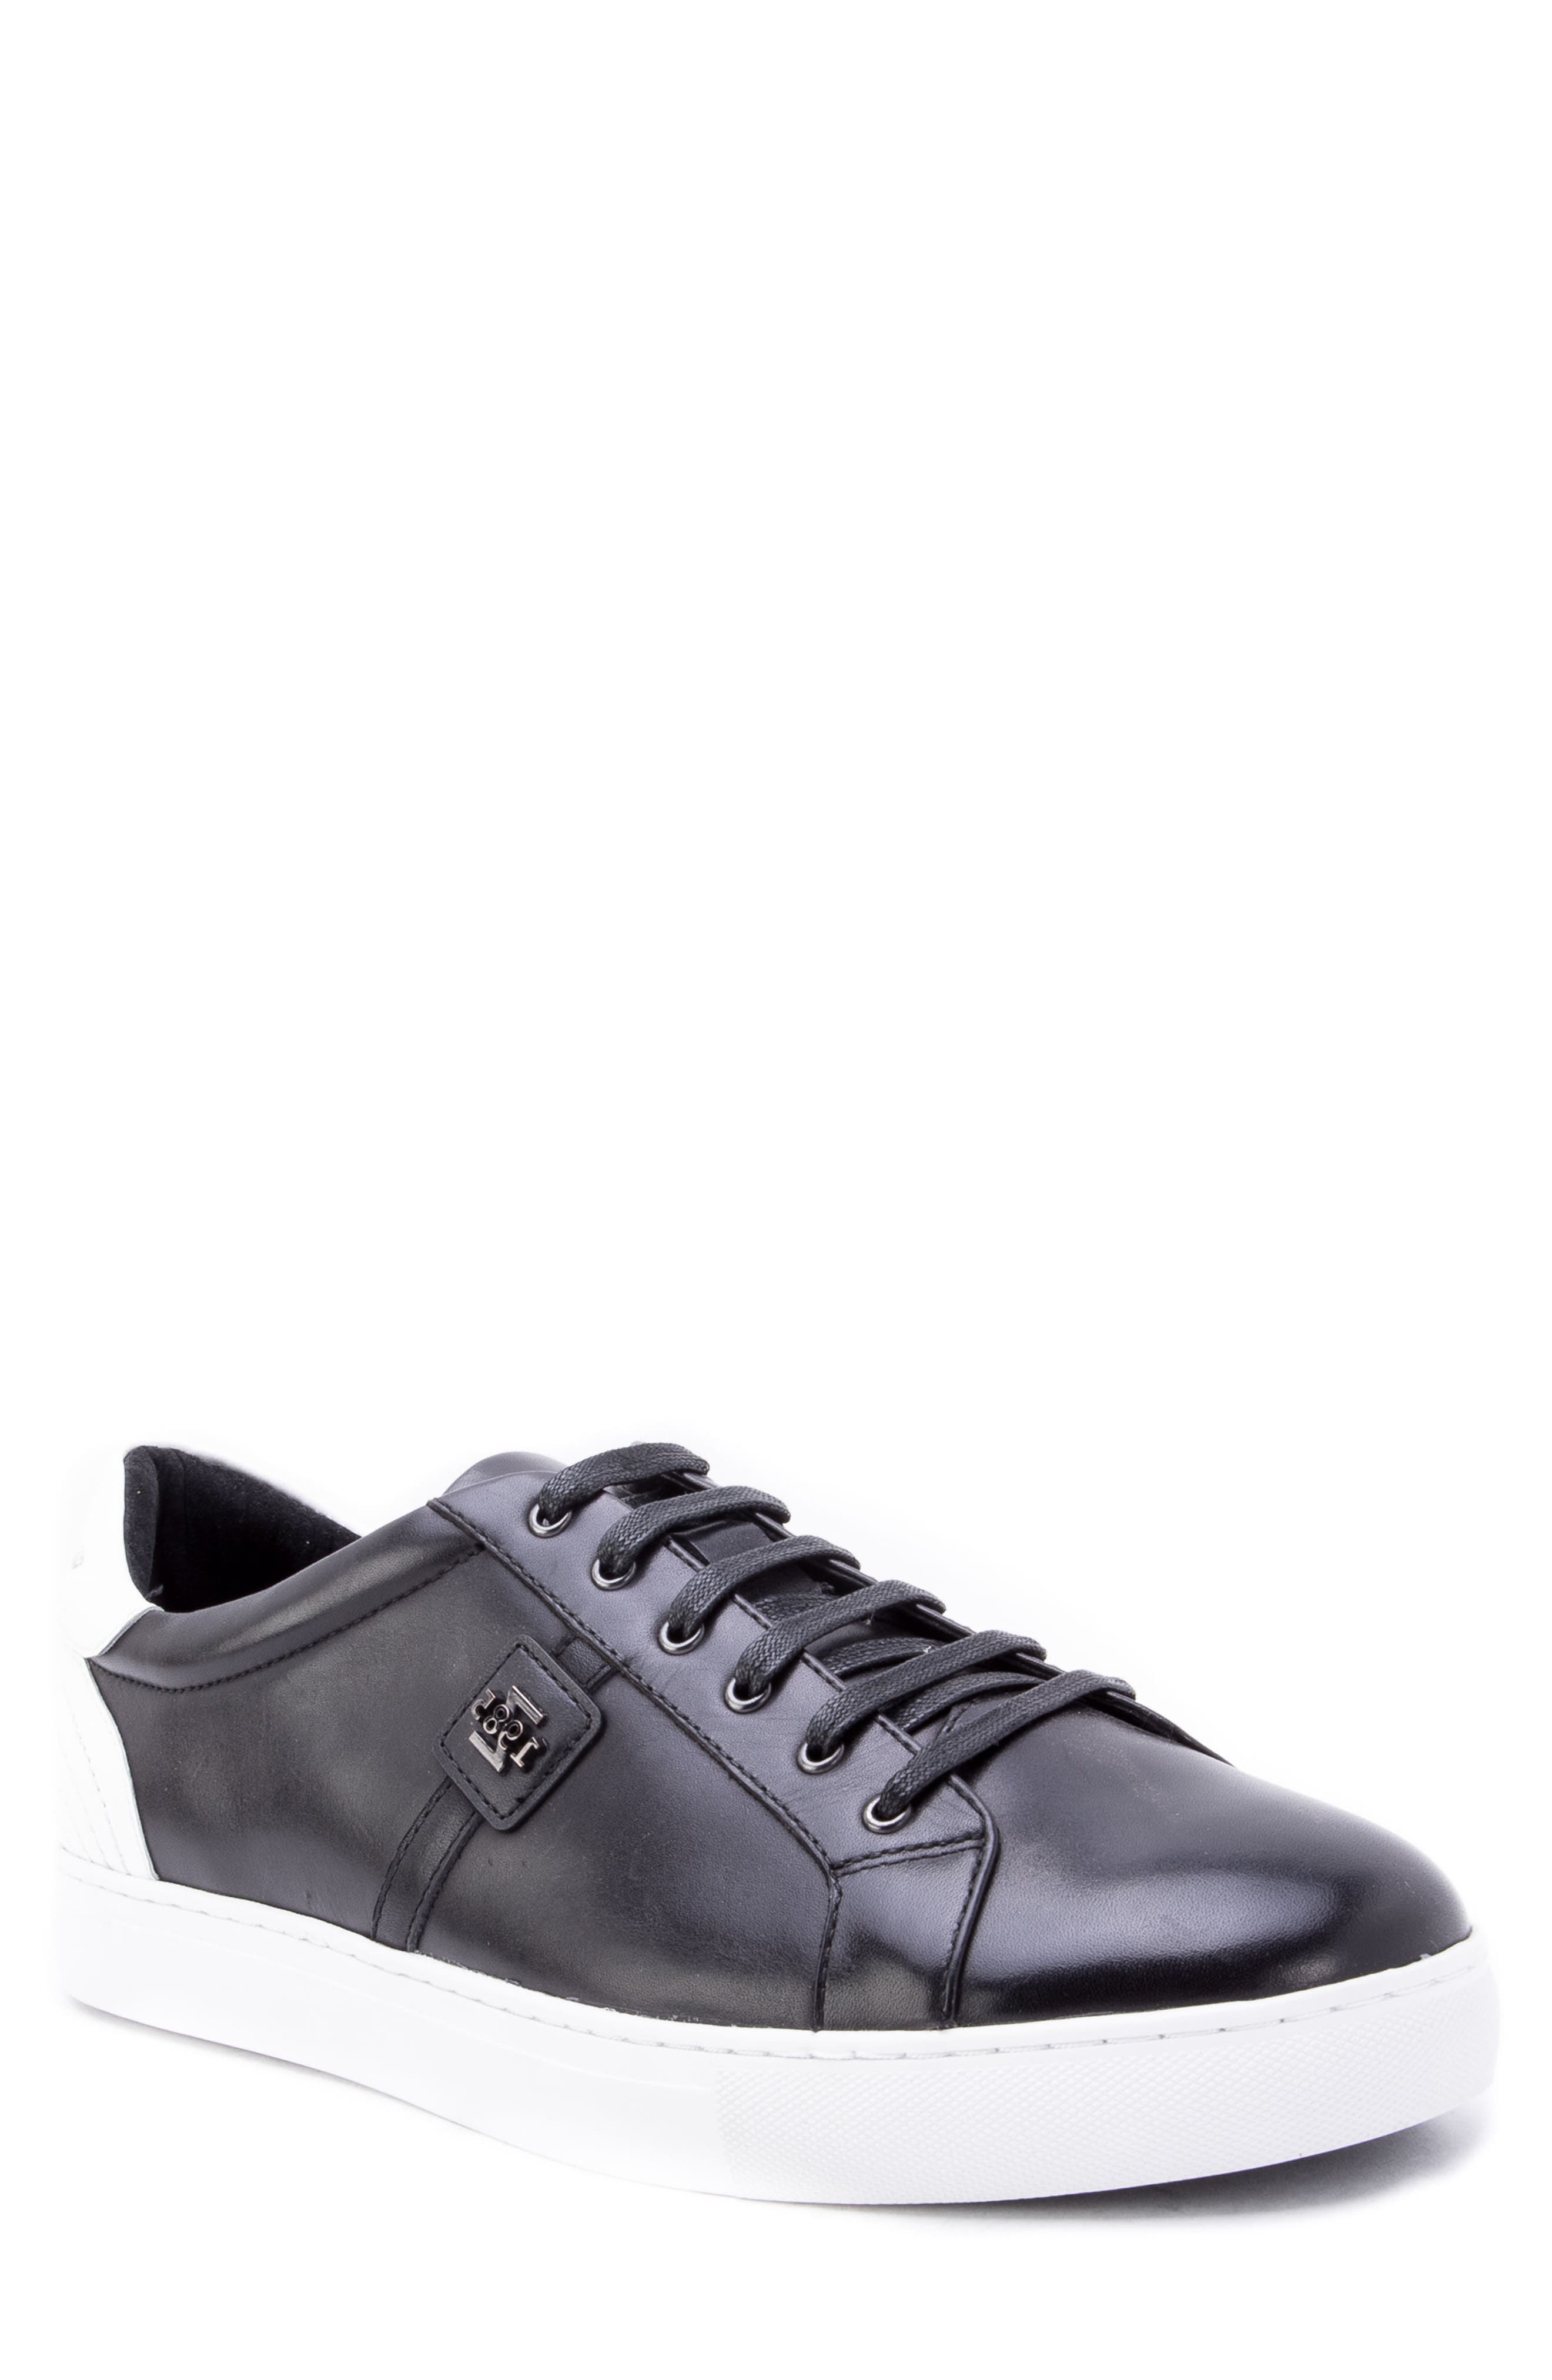 Scheffer Low Top Sneaker,                         Main,                         color, BLACK LEATHER